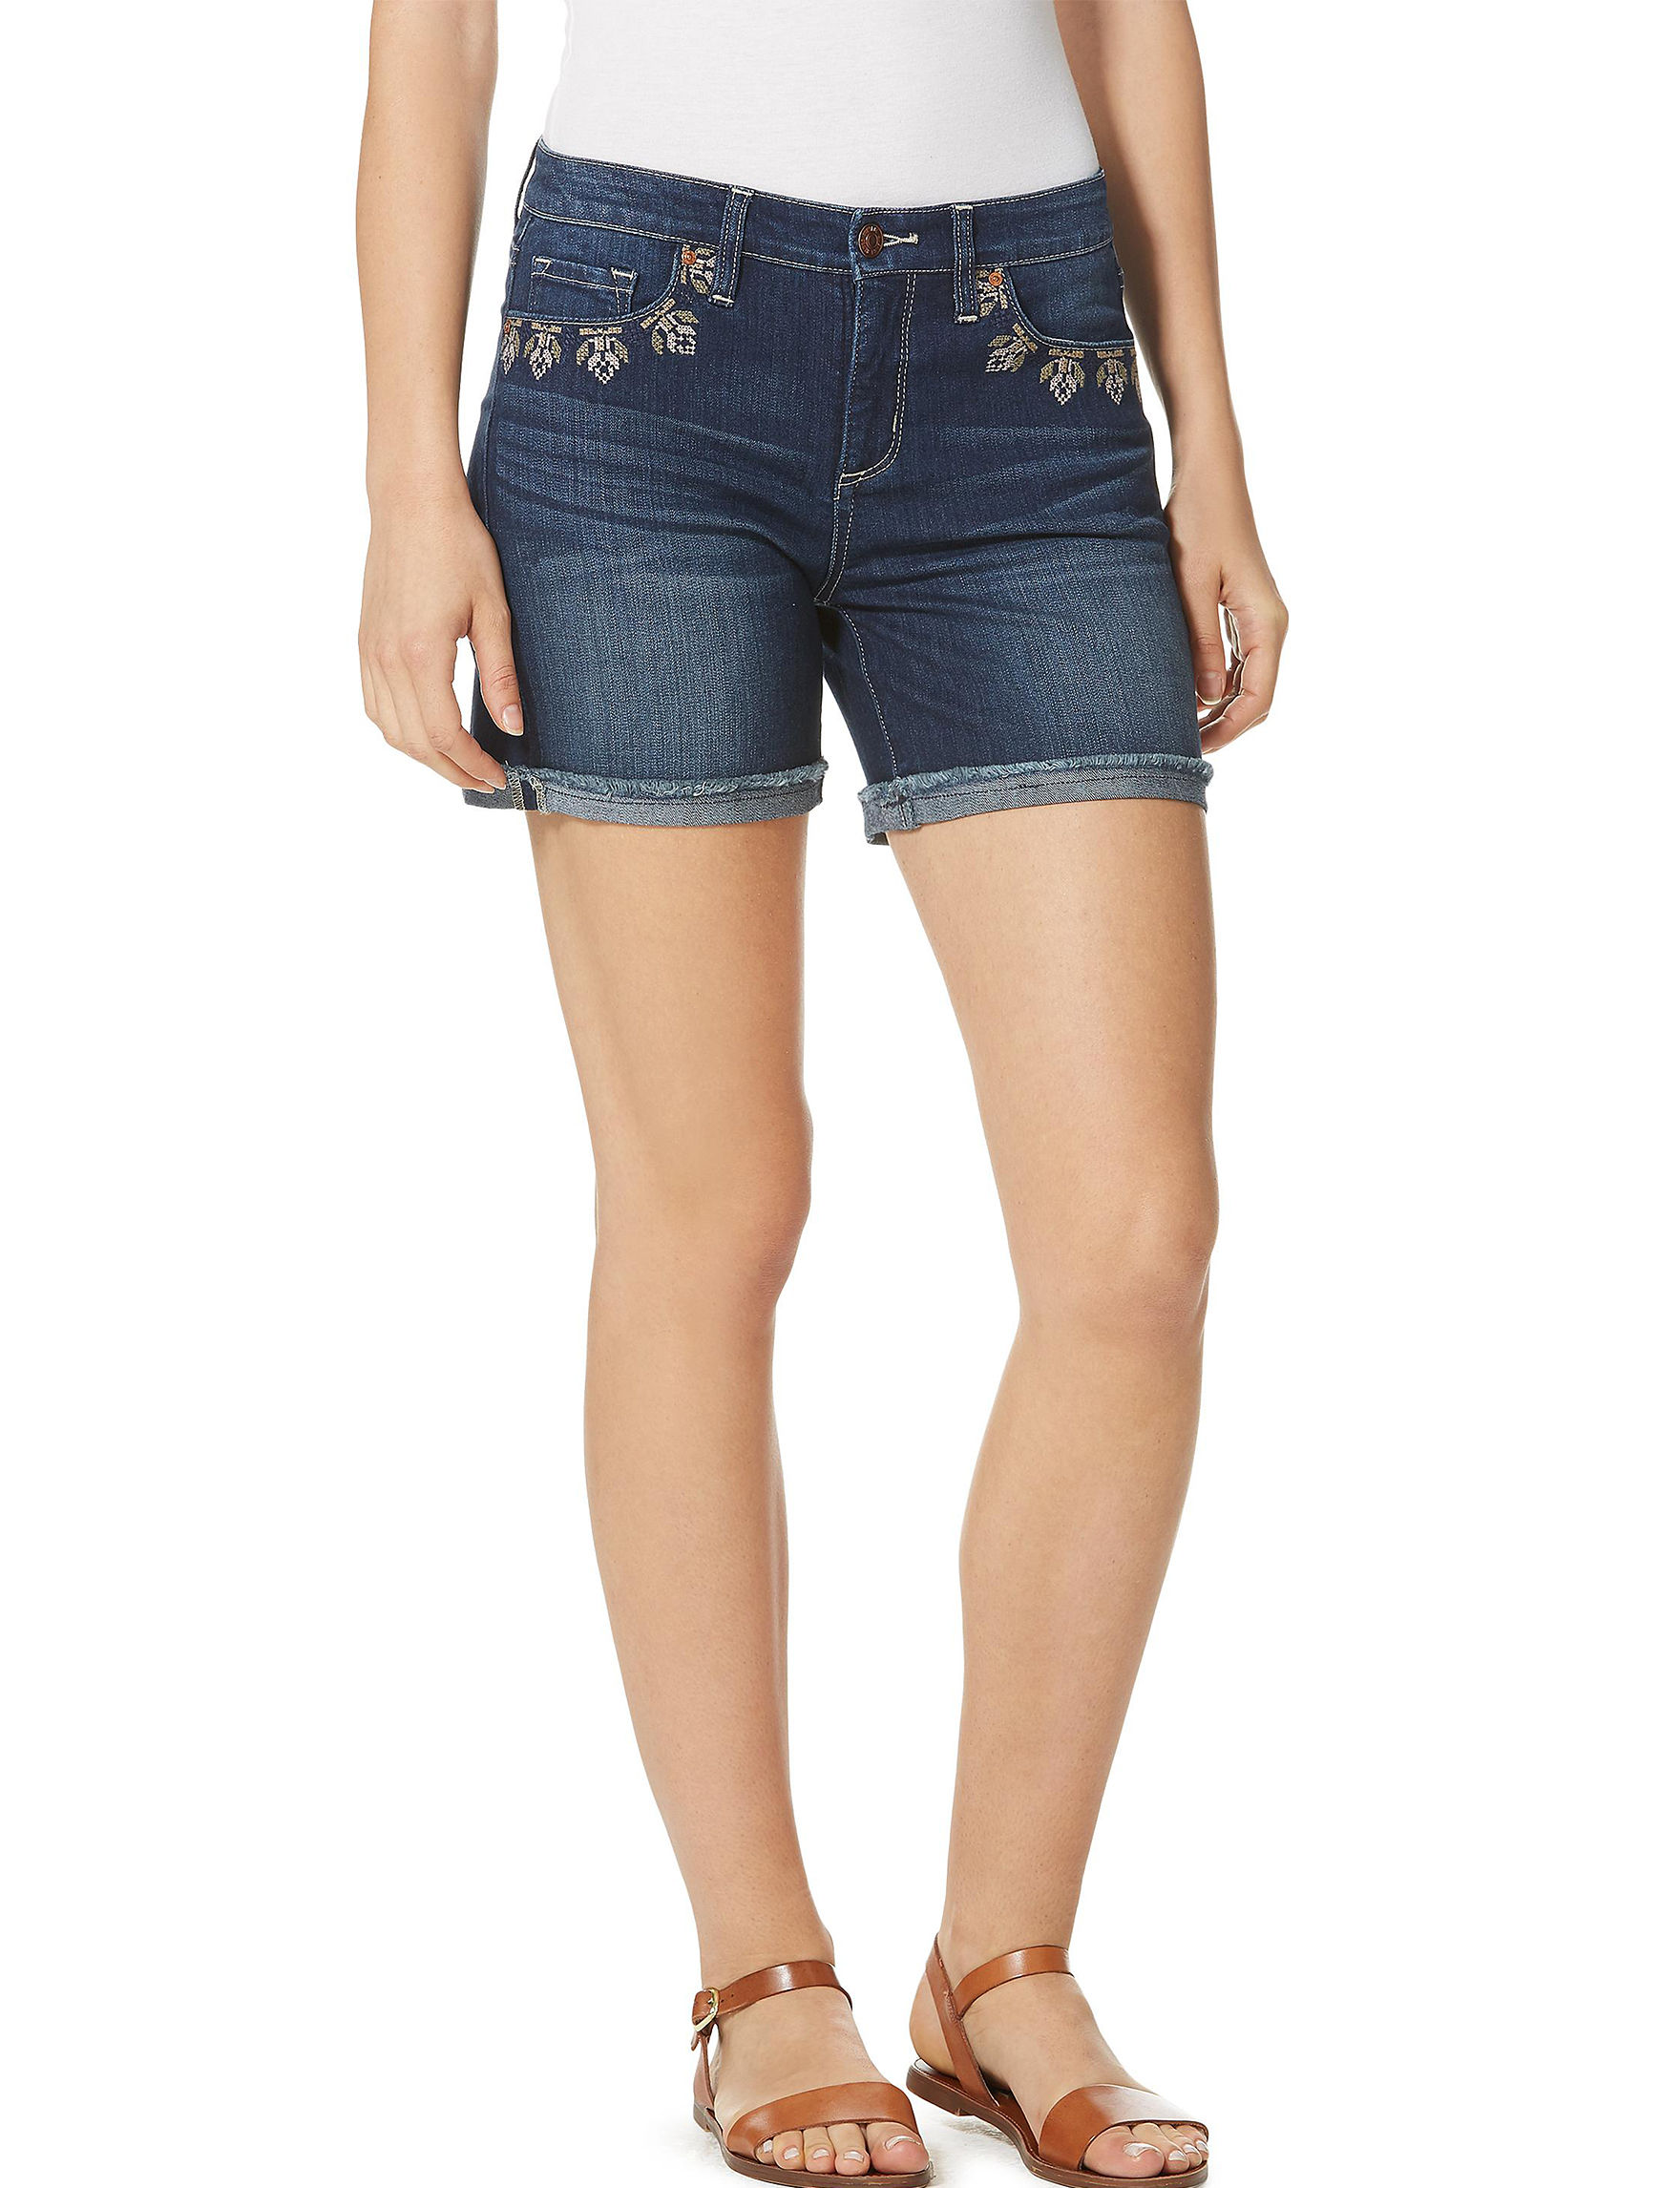 Vintage America Blues Blue Denim Shorts